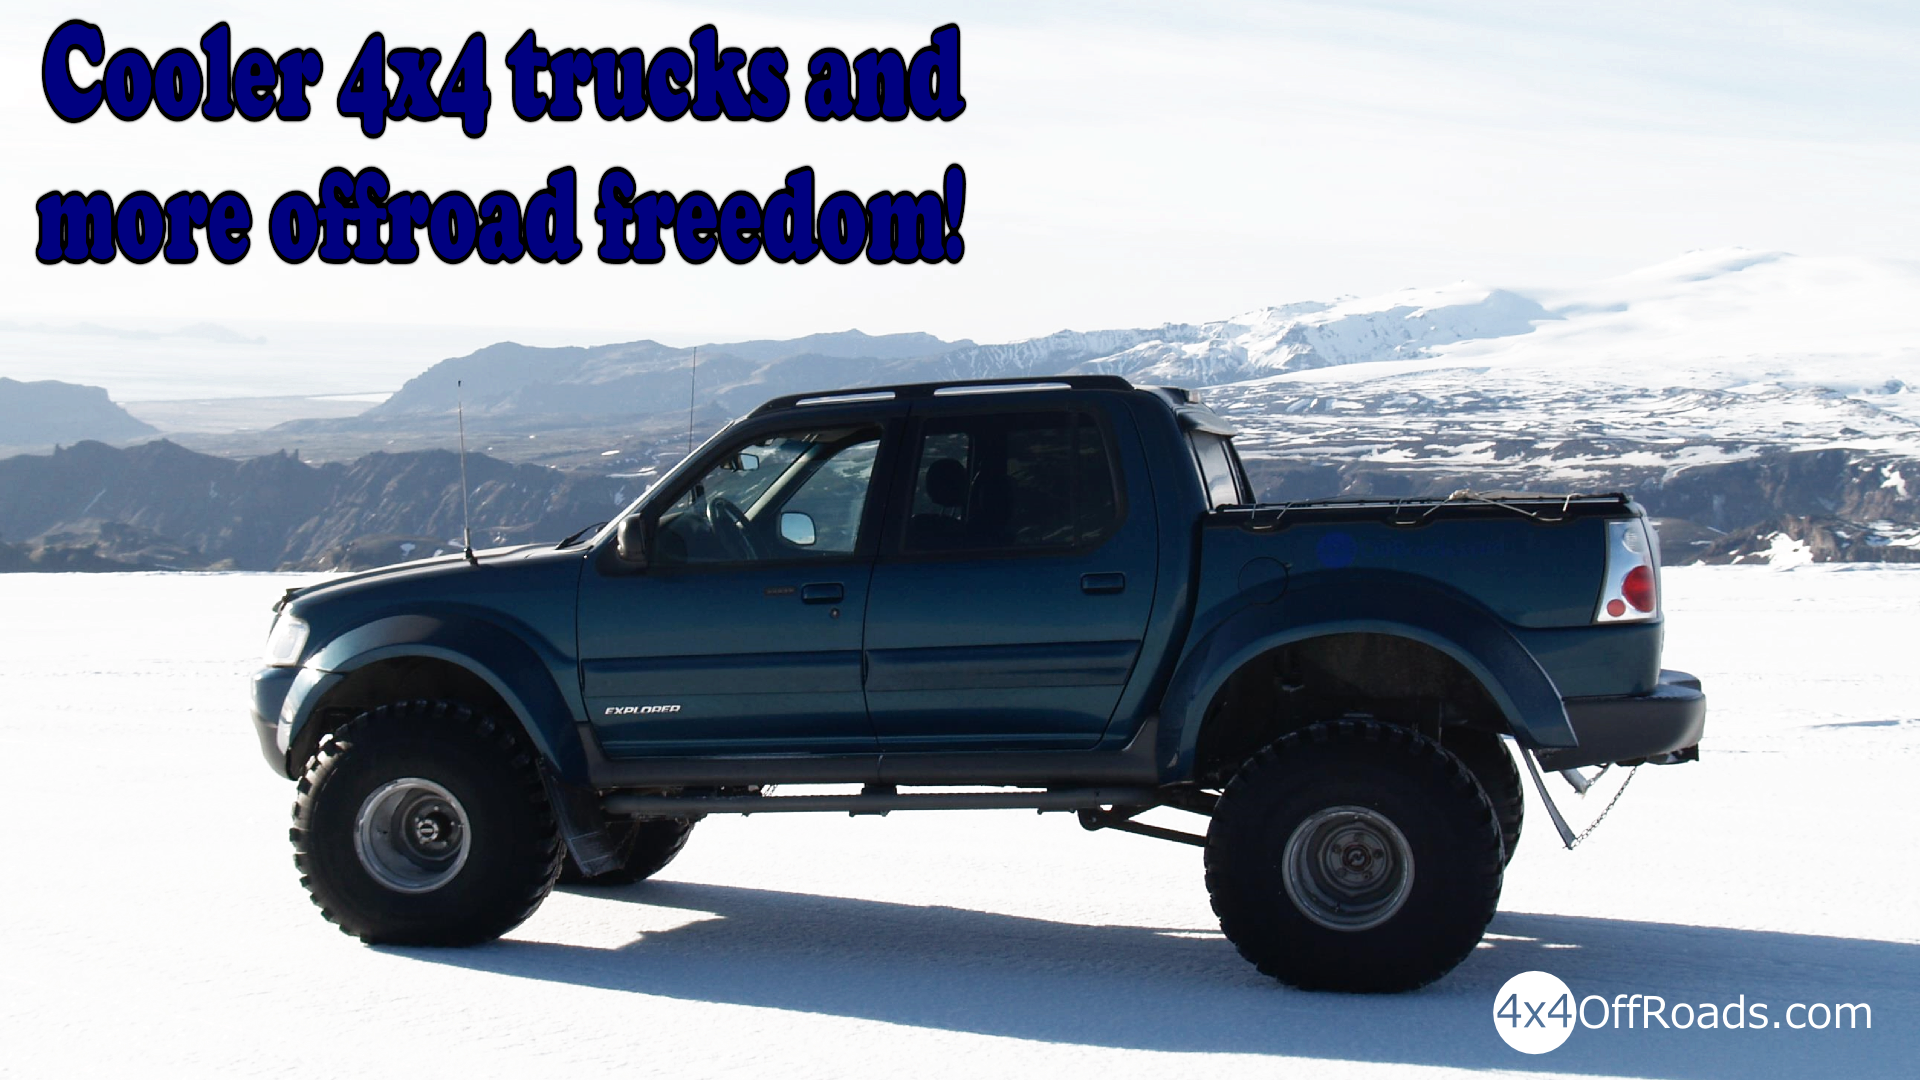 4x4 Wallpaper - Get Your FREE Lifted 4x4 Truck Wallpaper NOW!